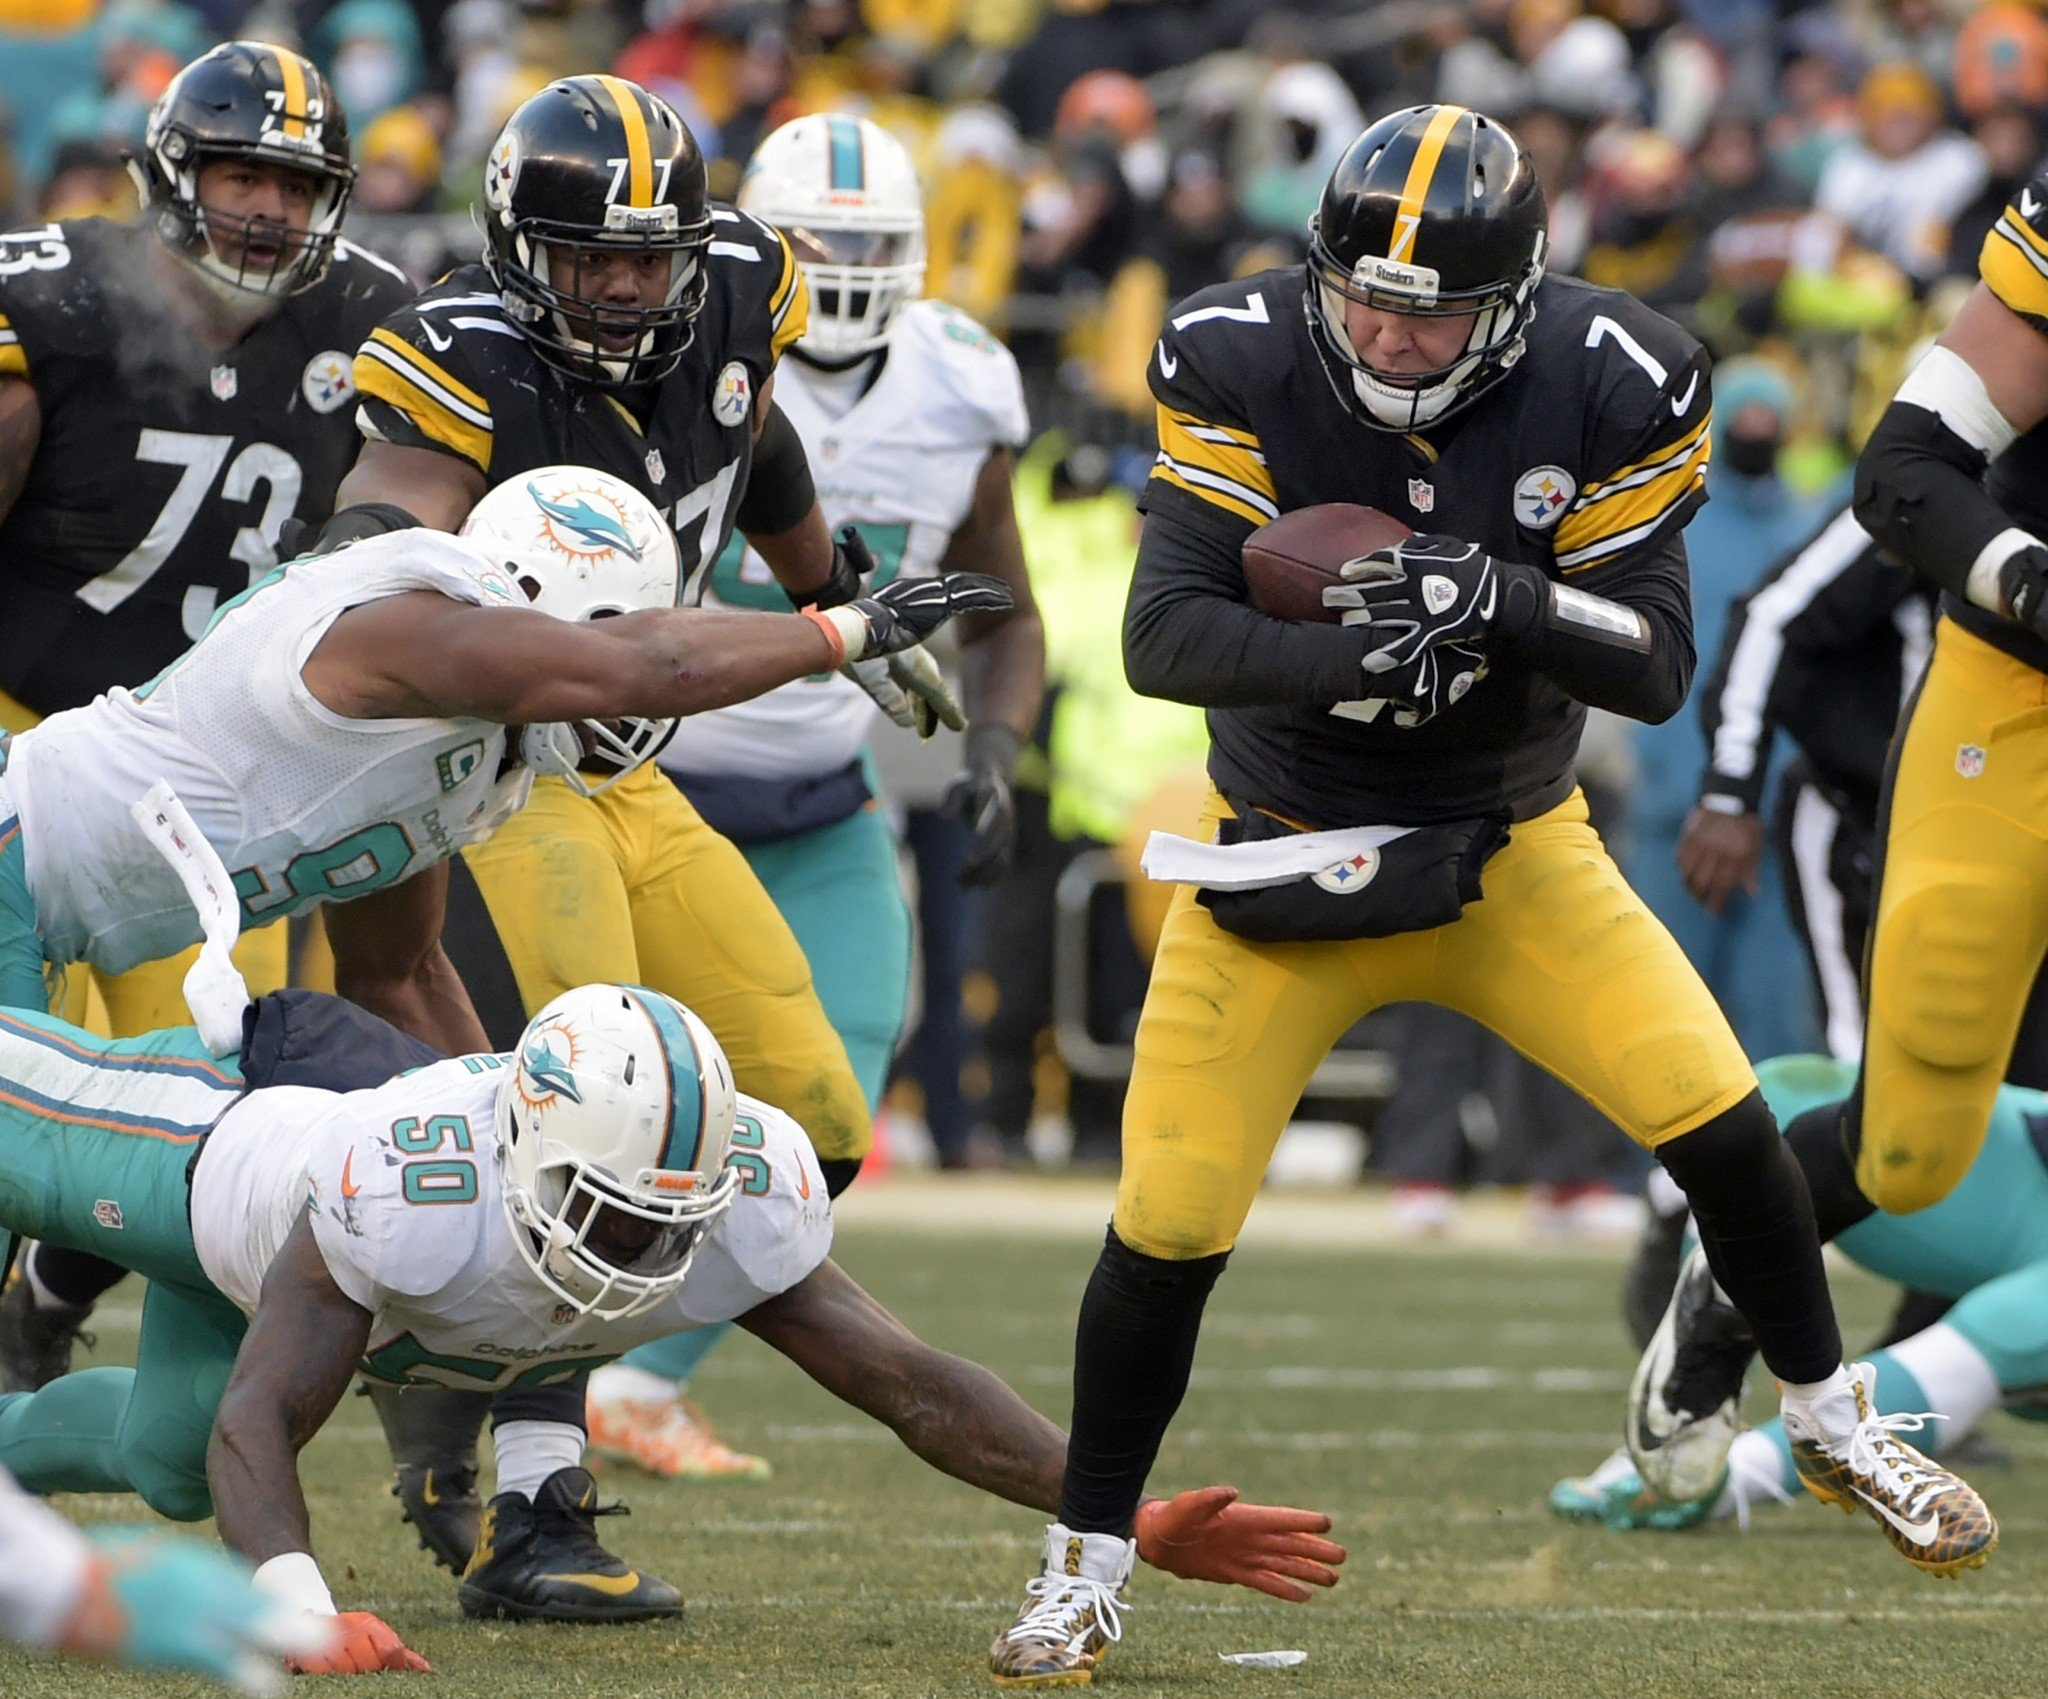 Pittsburgh Steelers QB Ben Roethlisberger hurt his ankle late in Sunday's win. (AP)